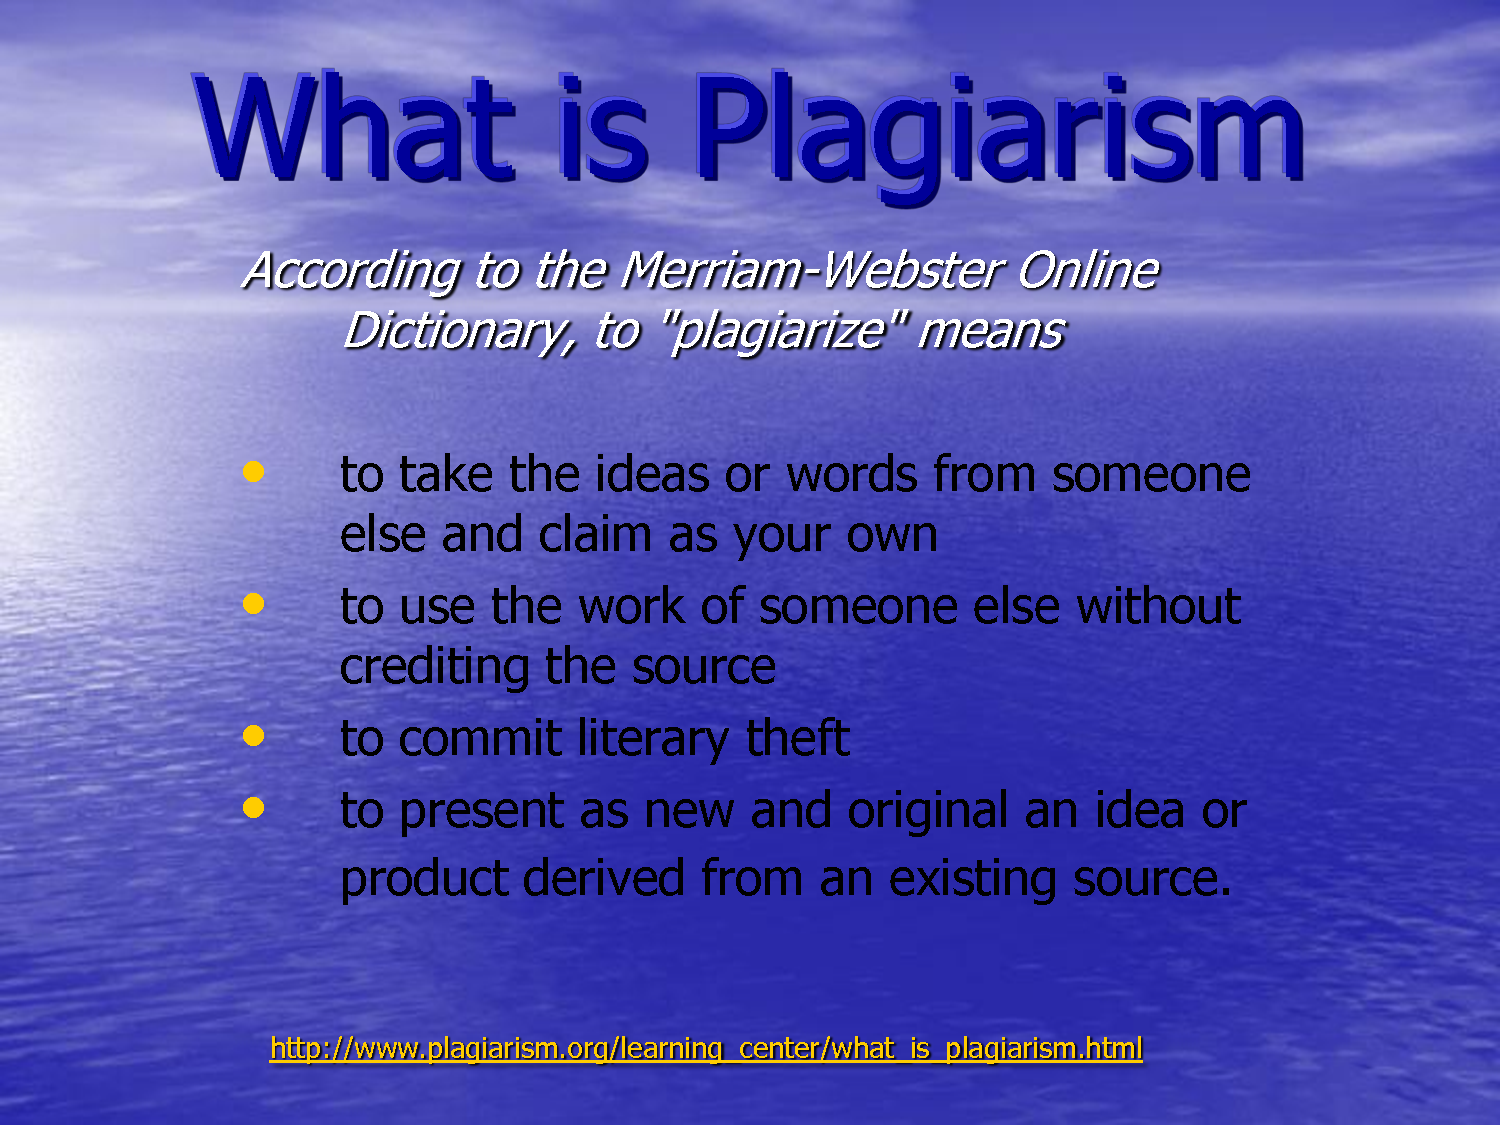 People who plagiarized